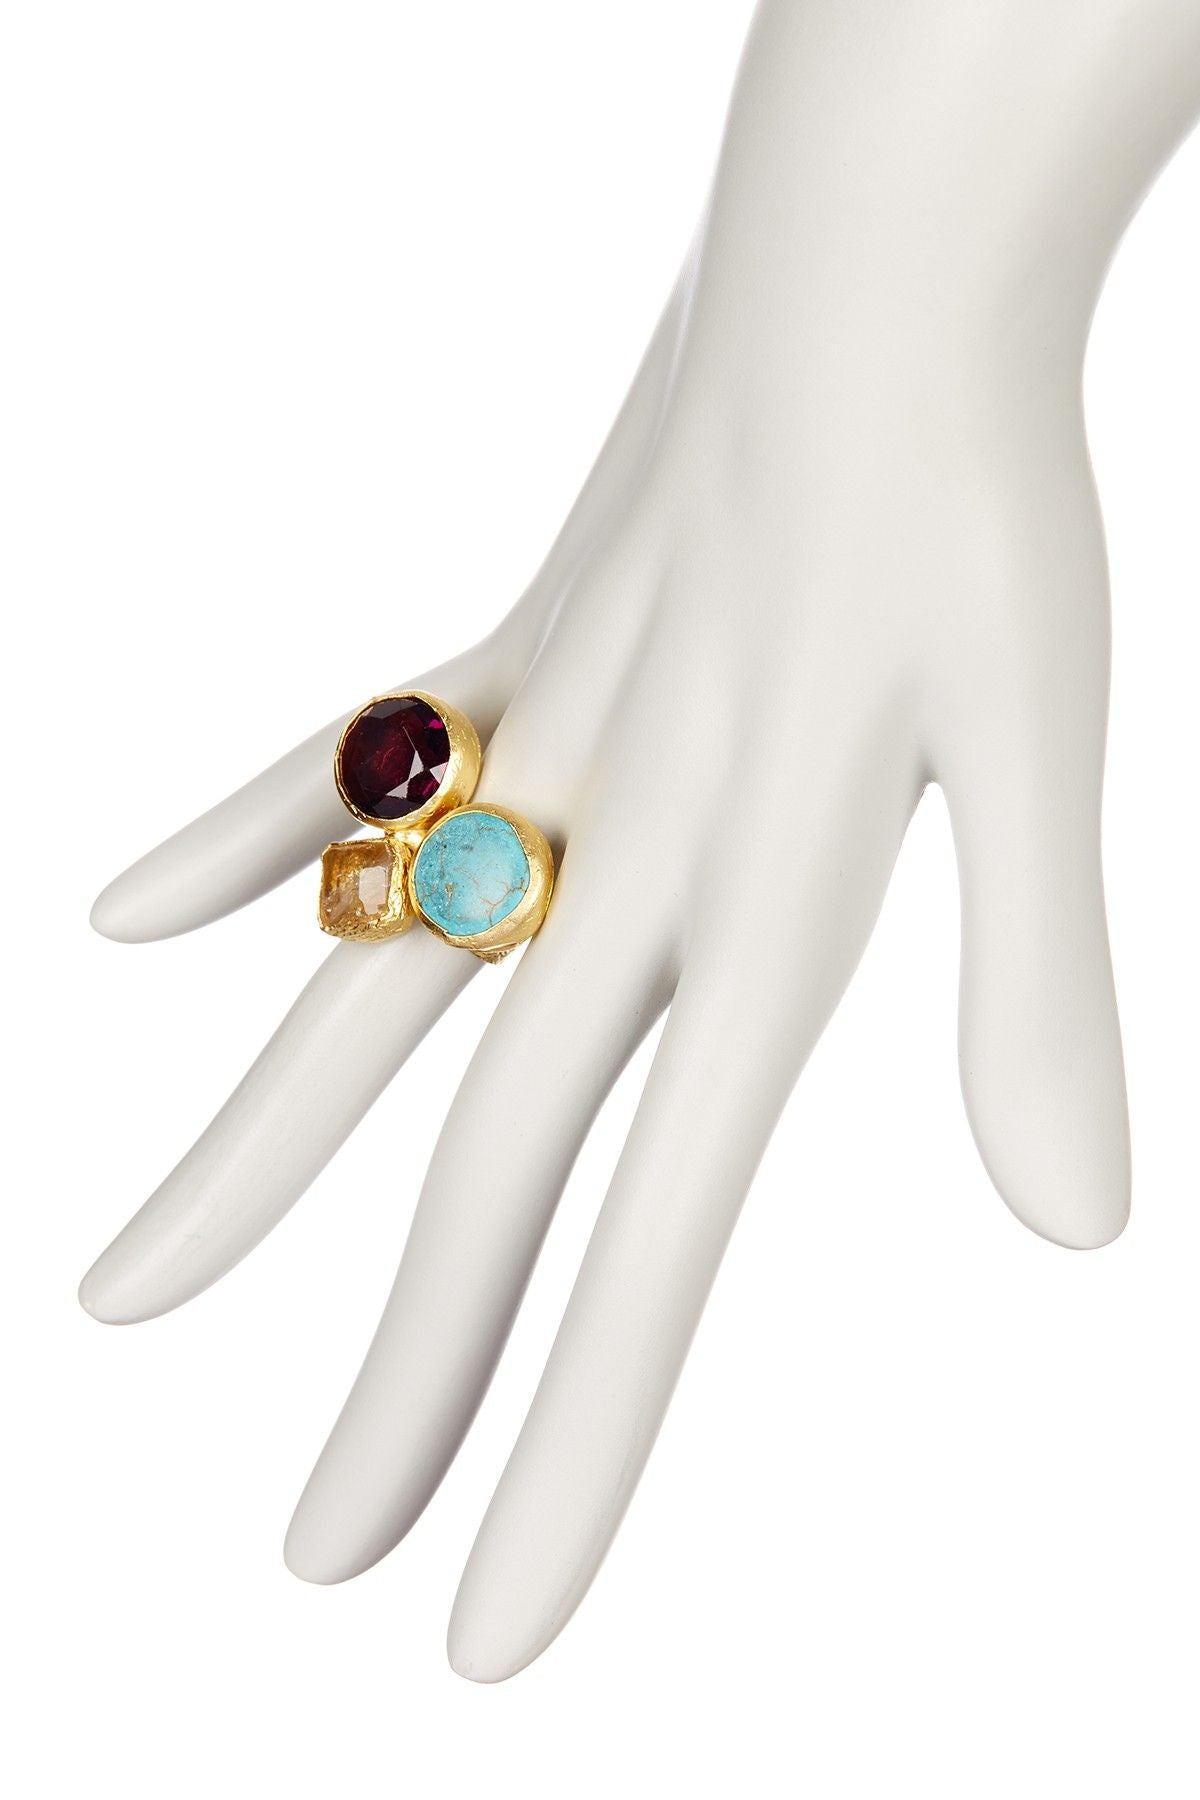 Triple Cluster Ring- Citrine, Turquoise, Amethyst